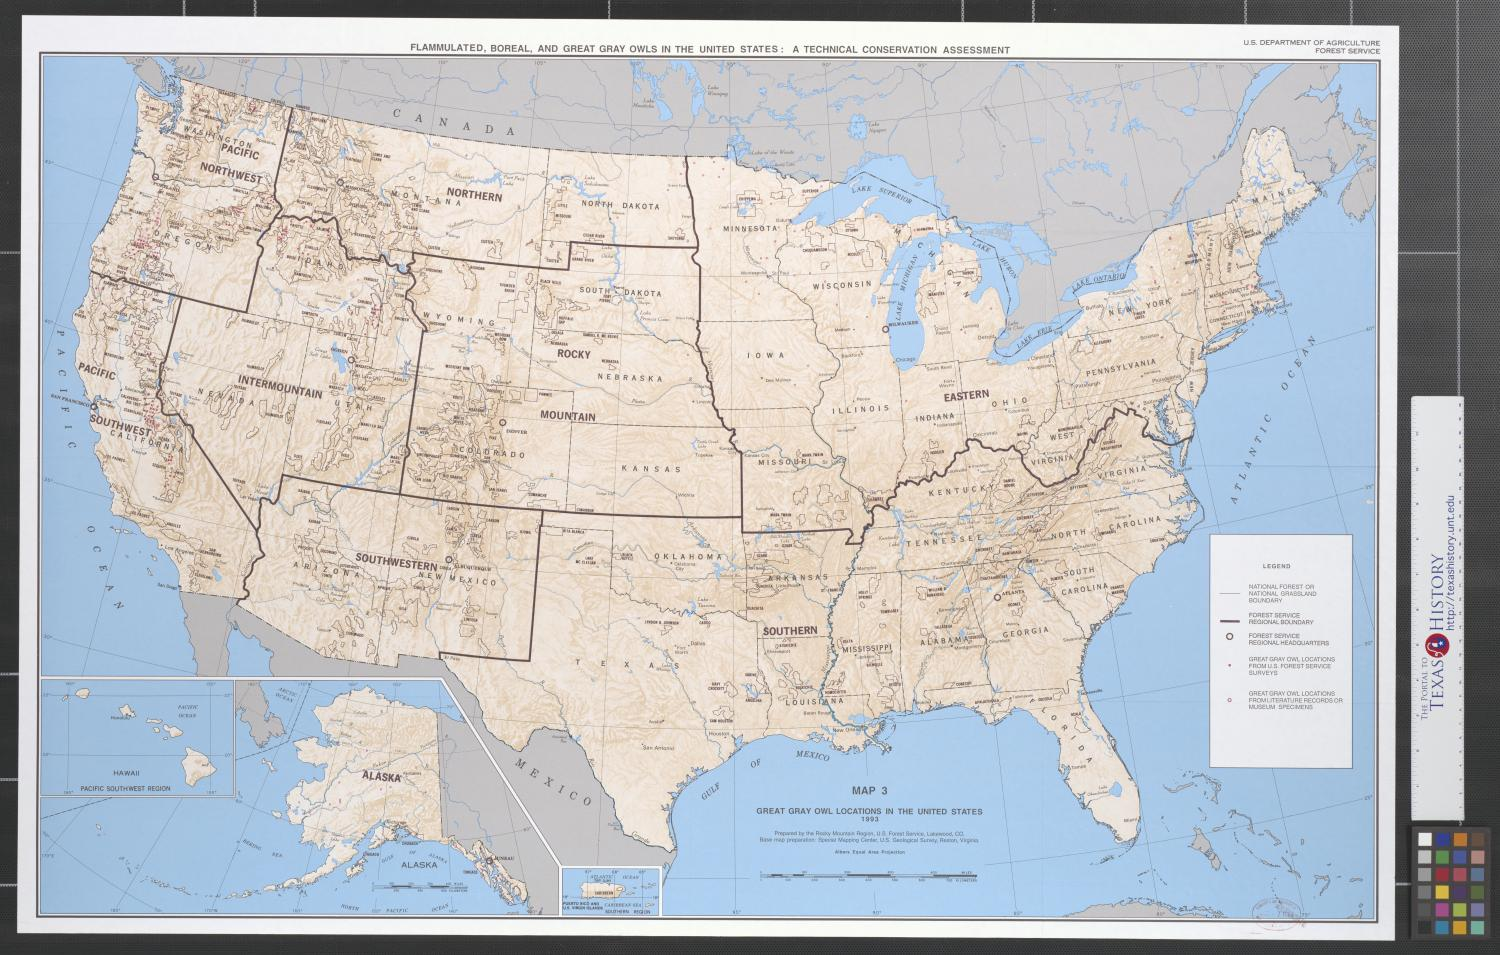 Great gray owl locations in the United States, 1993.                                                                                                      [Sequence #]: 1 of 2